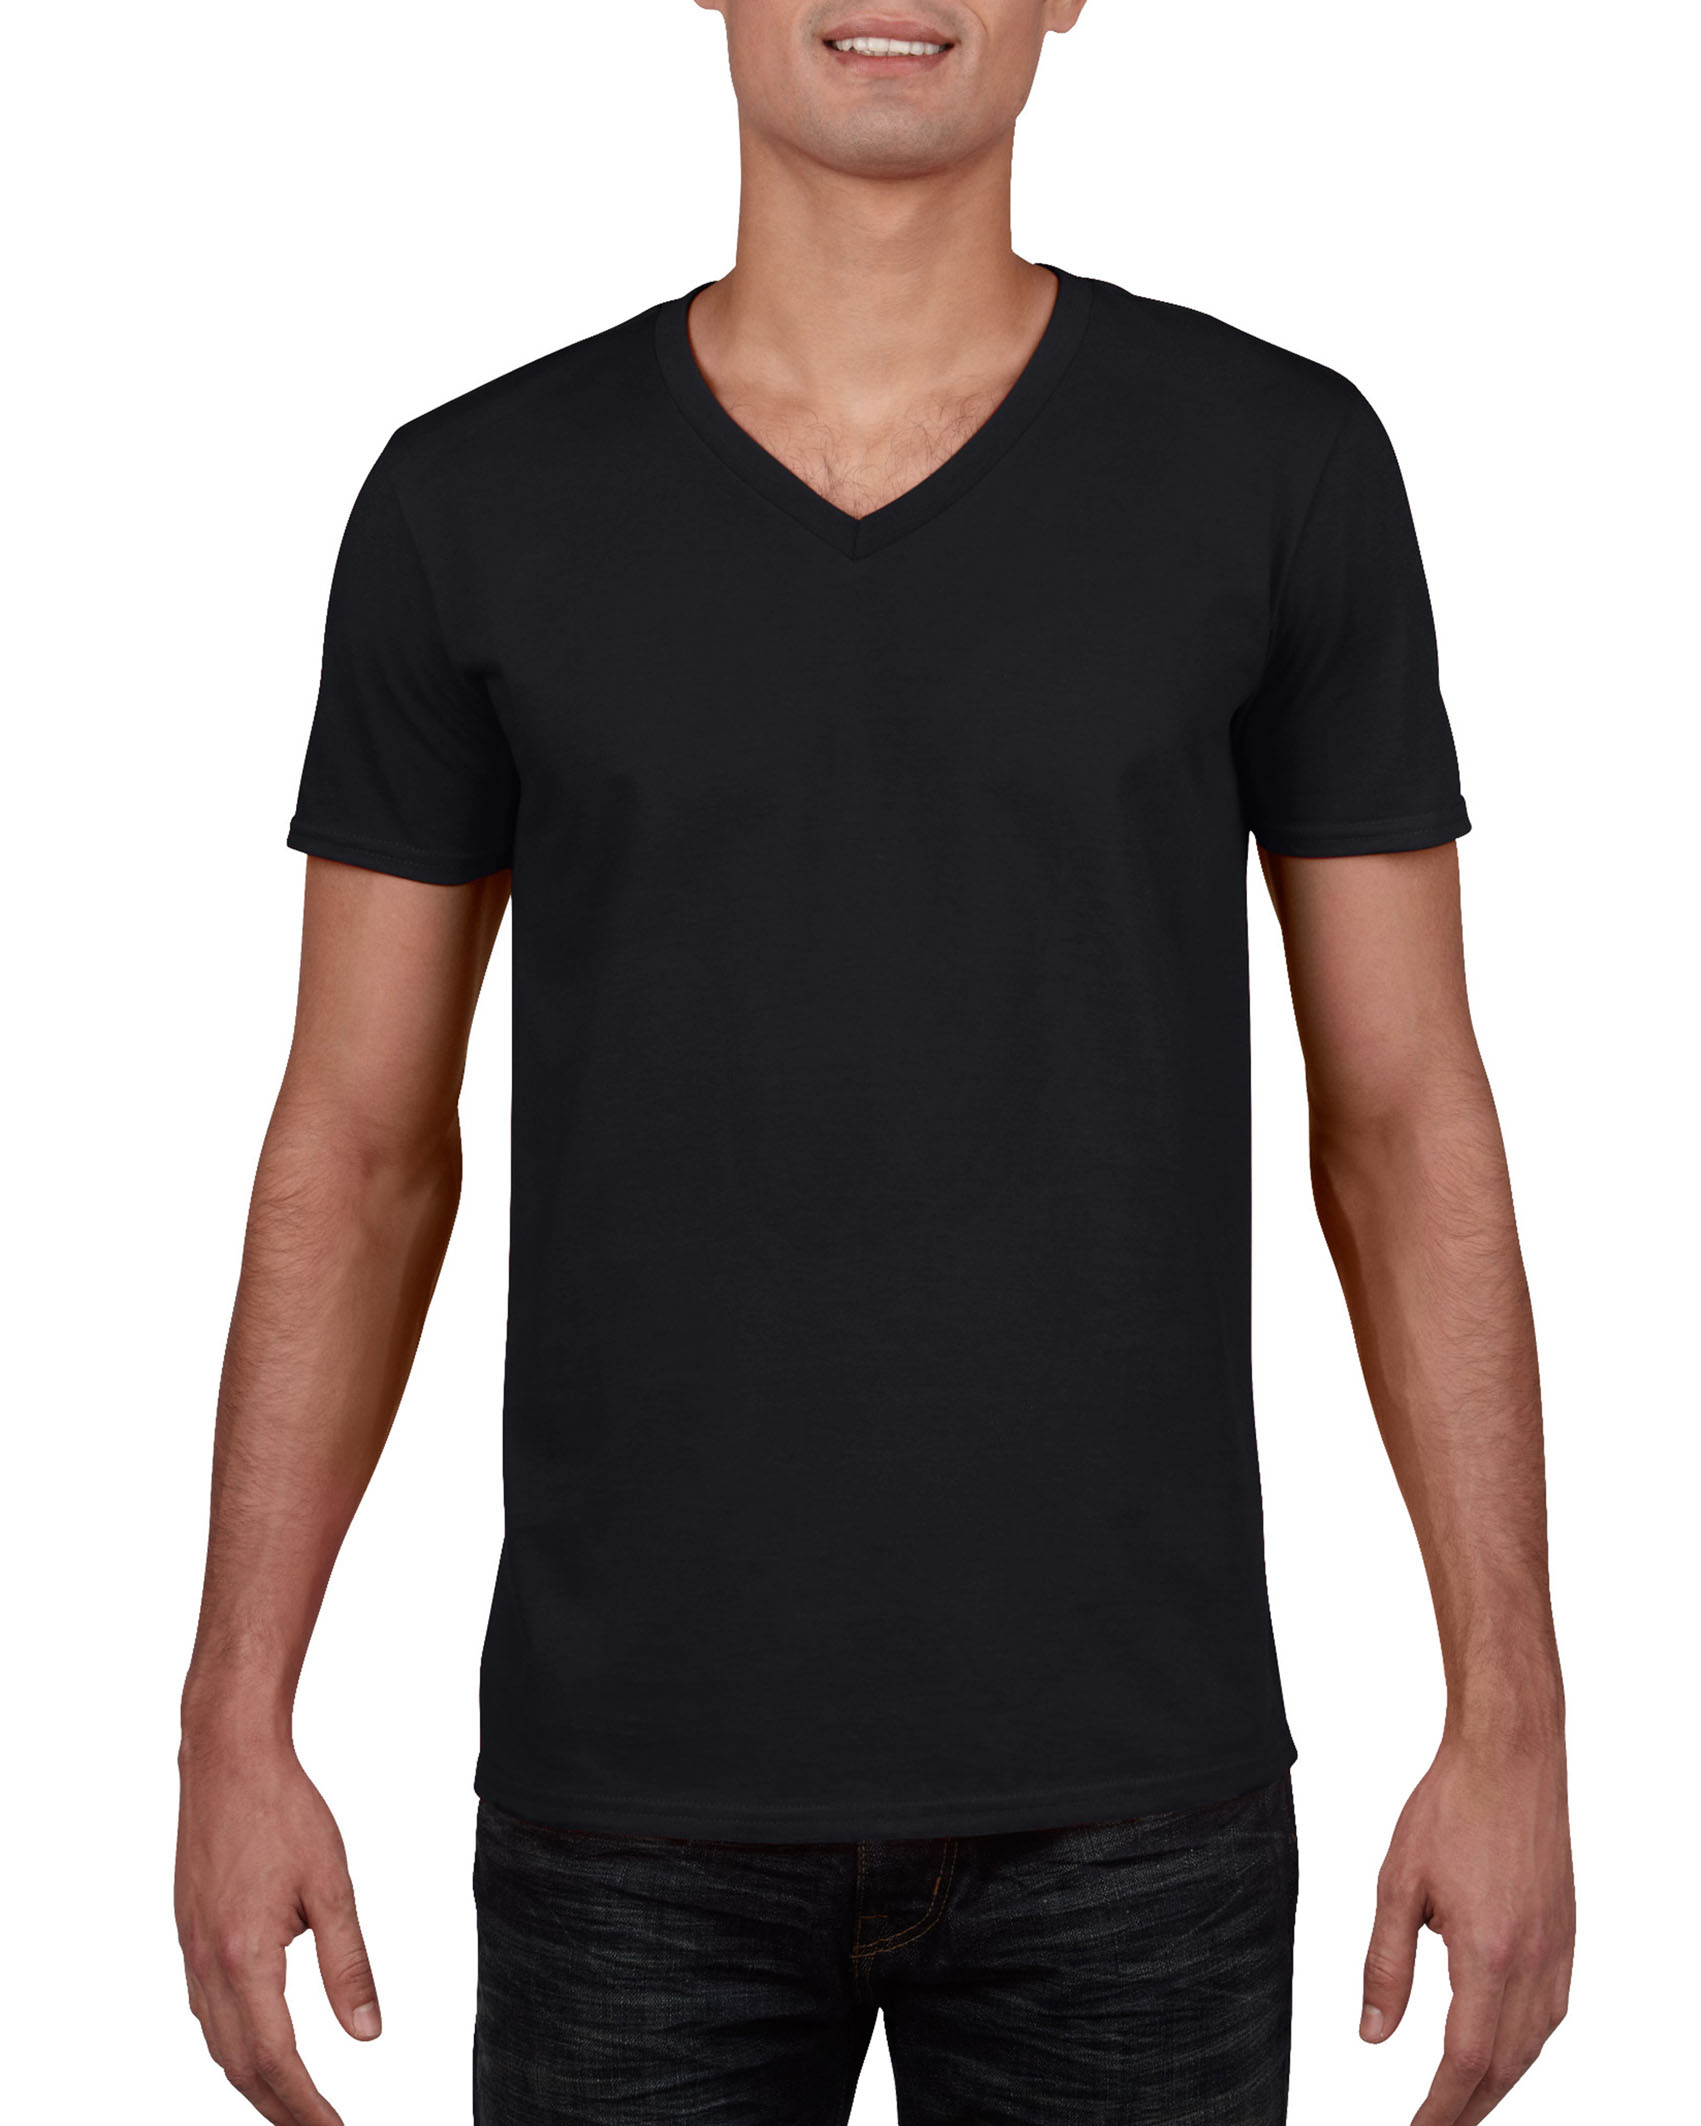 Gildan T-shirt V-Neck SoftStyle for him